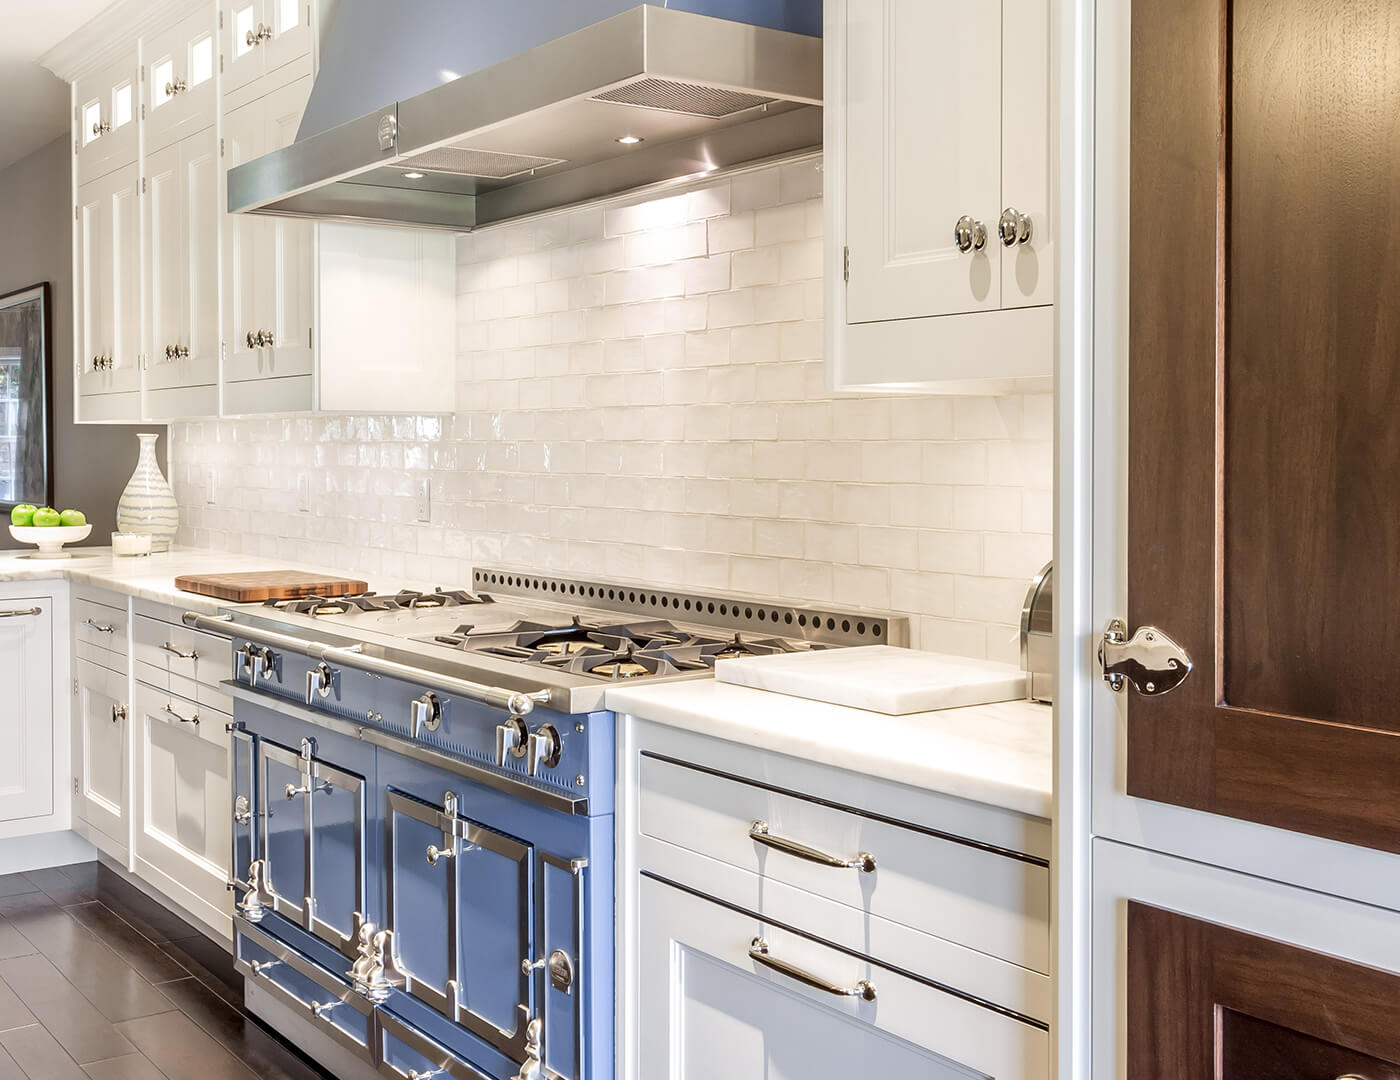 Beautiful range hood, stained walnut fridge doors, White cabinets, with polished nickel finishes